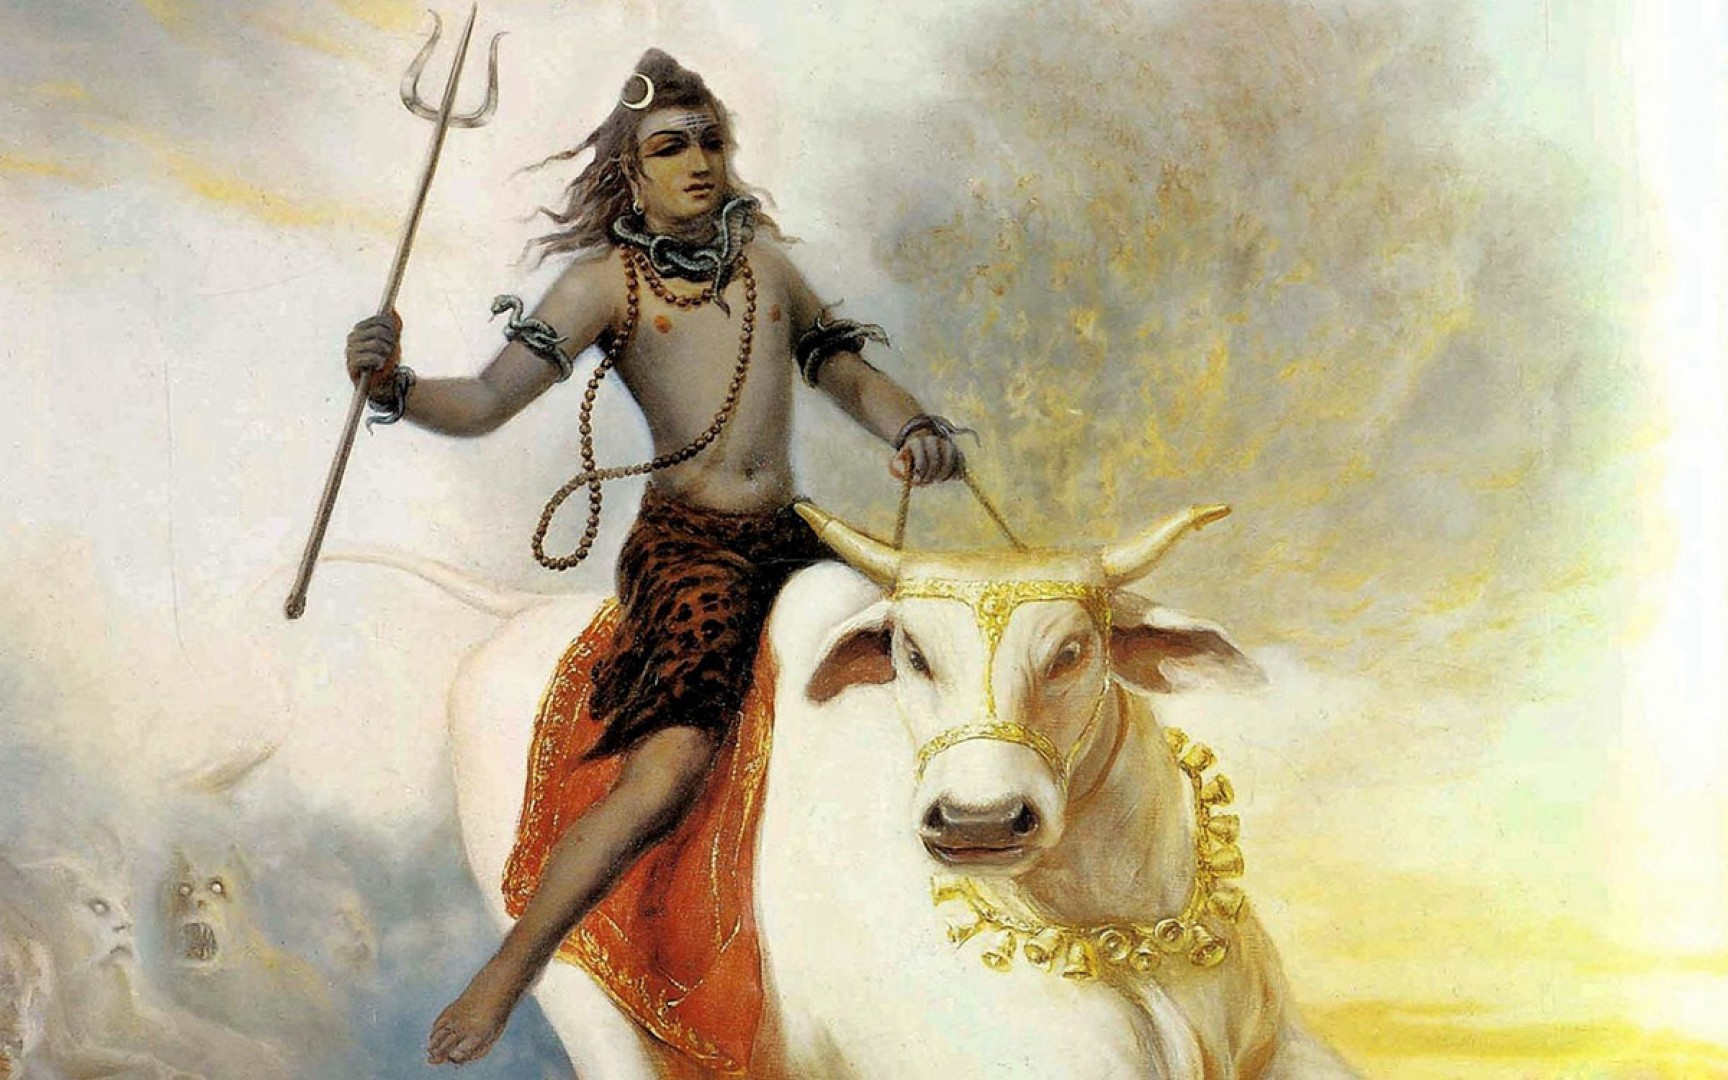 Happy Maha Shivaratri Devon Ke Dev Mahadev Hd Wallpapers